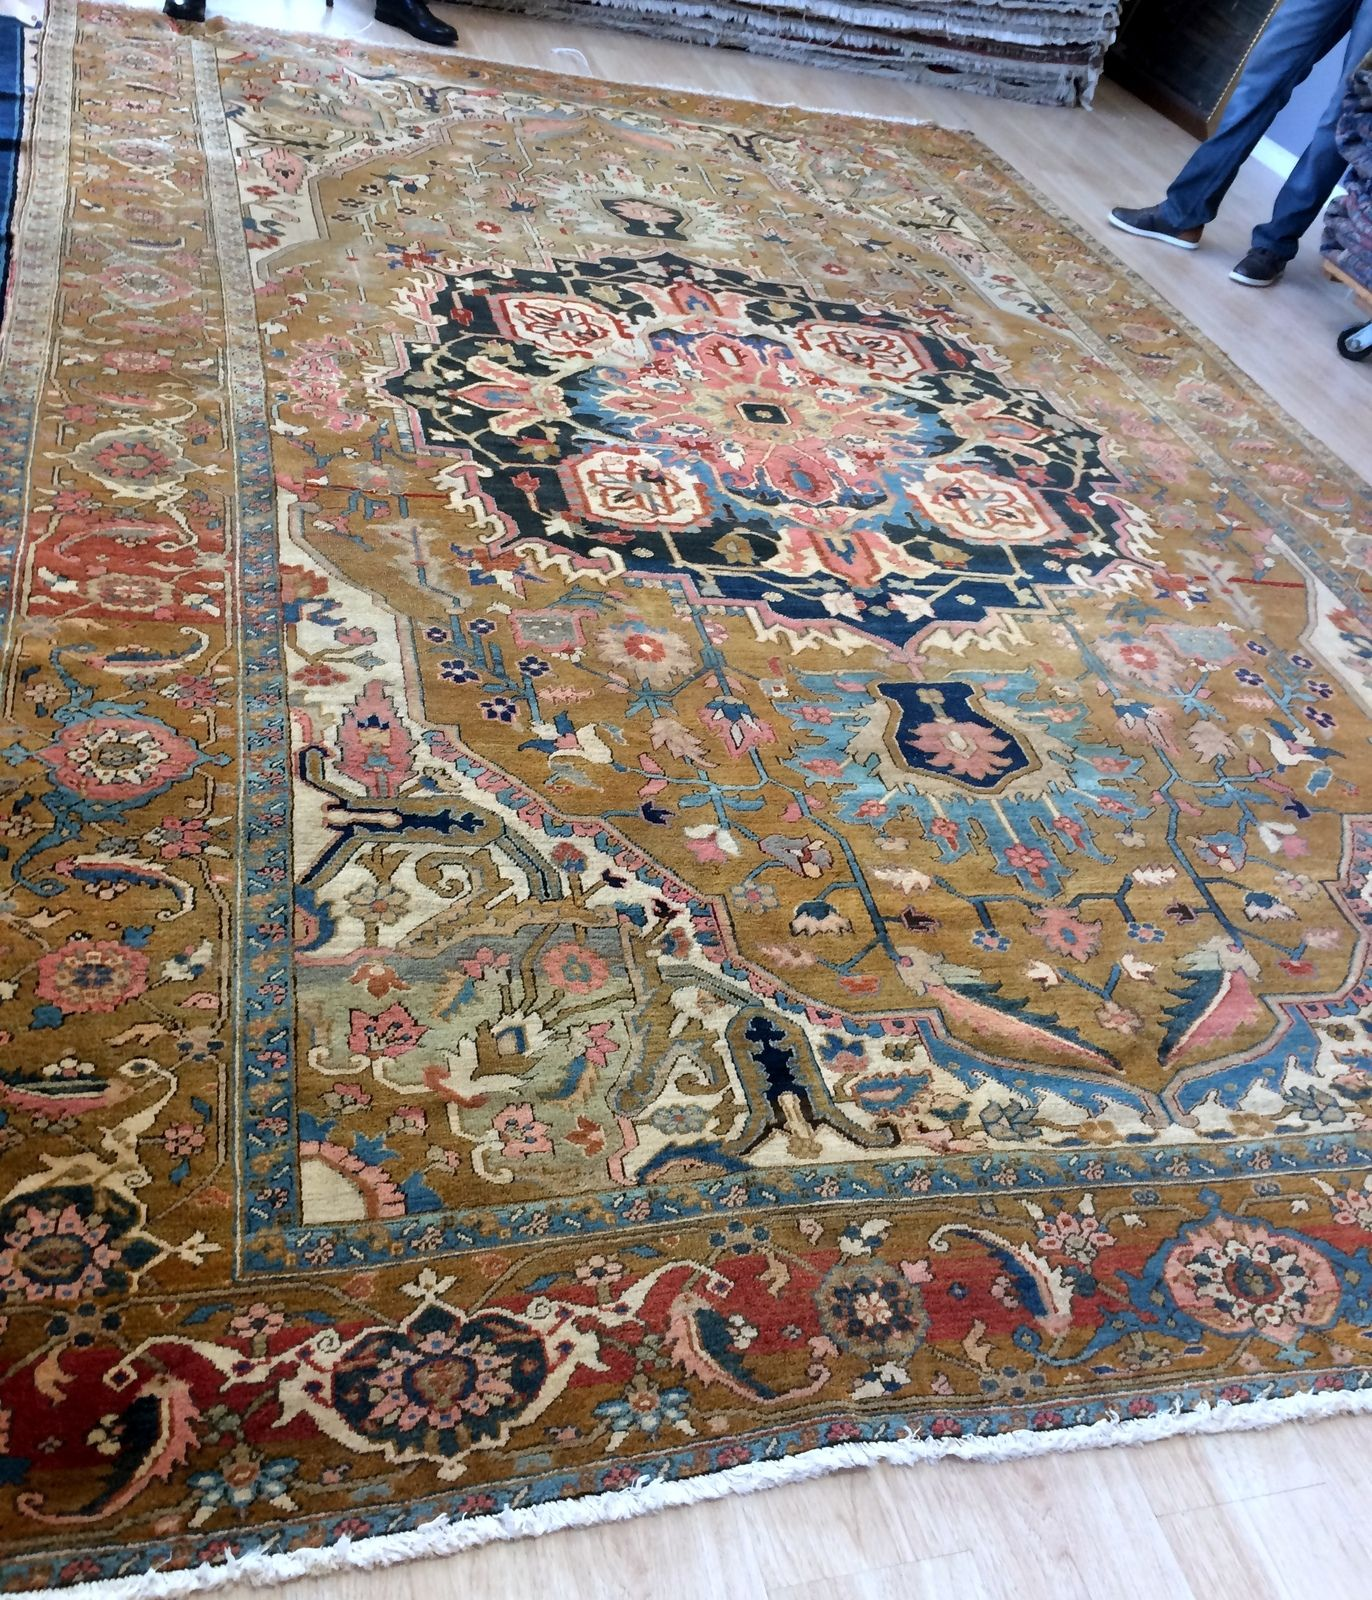 Handmade Antique Persian Serapi Rug 10 X 15 304cm X 457cm 1880s 1f55 With Images Living Room Rug Placement Room Rugs Rugs In Living Room